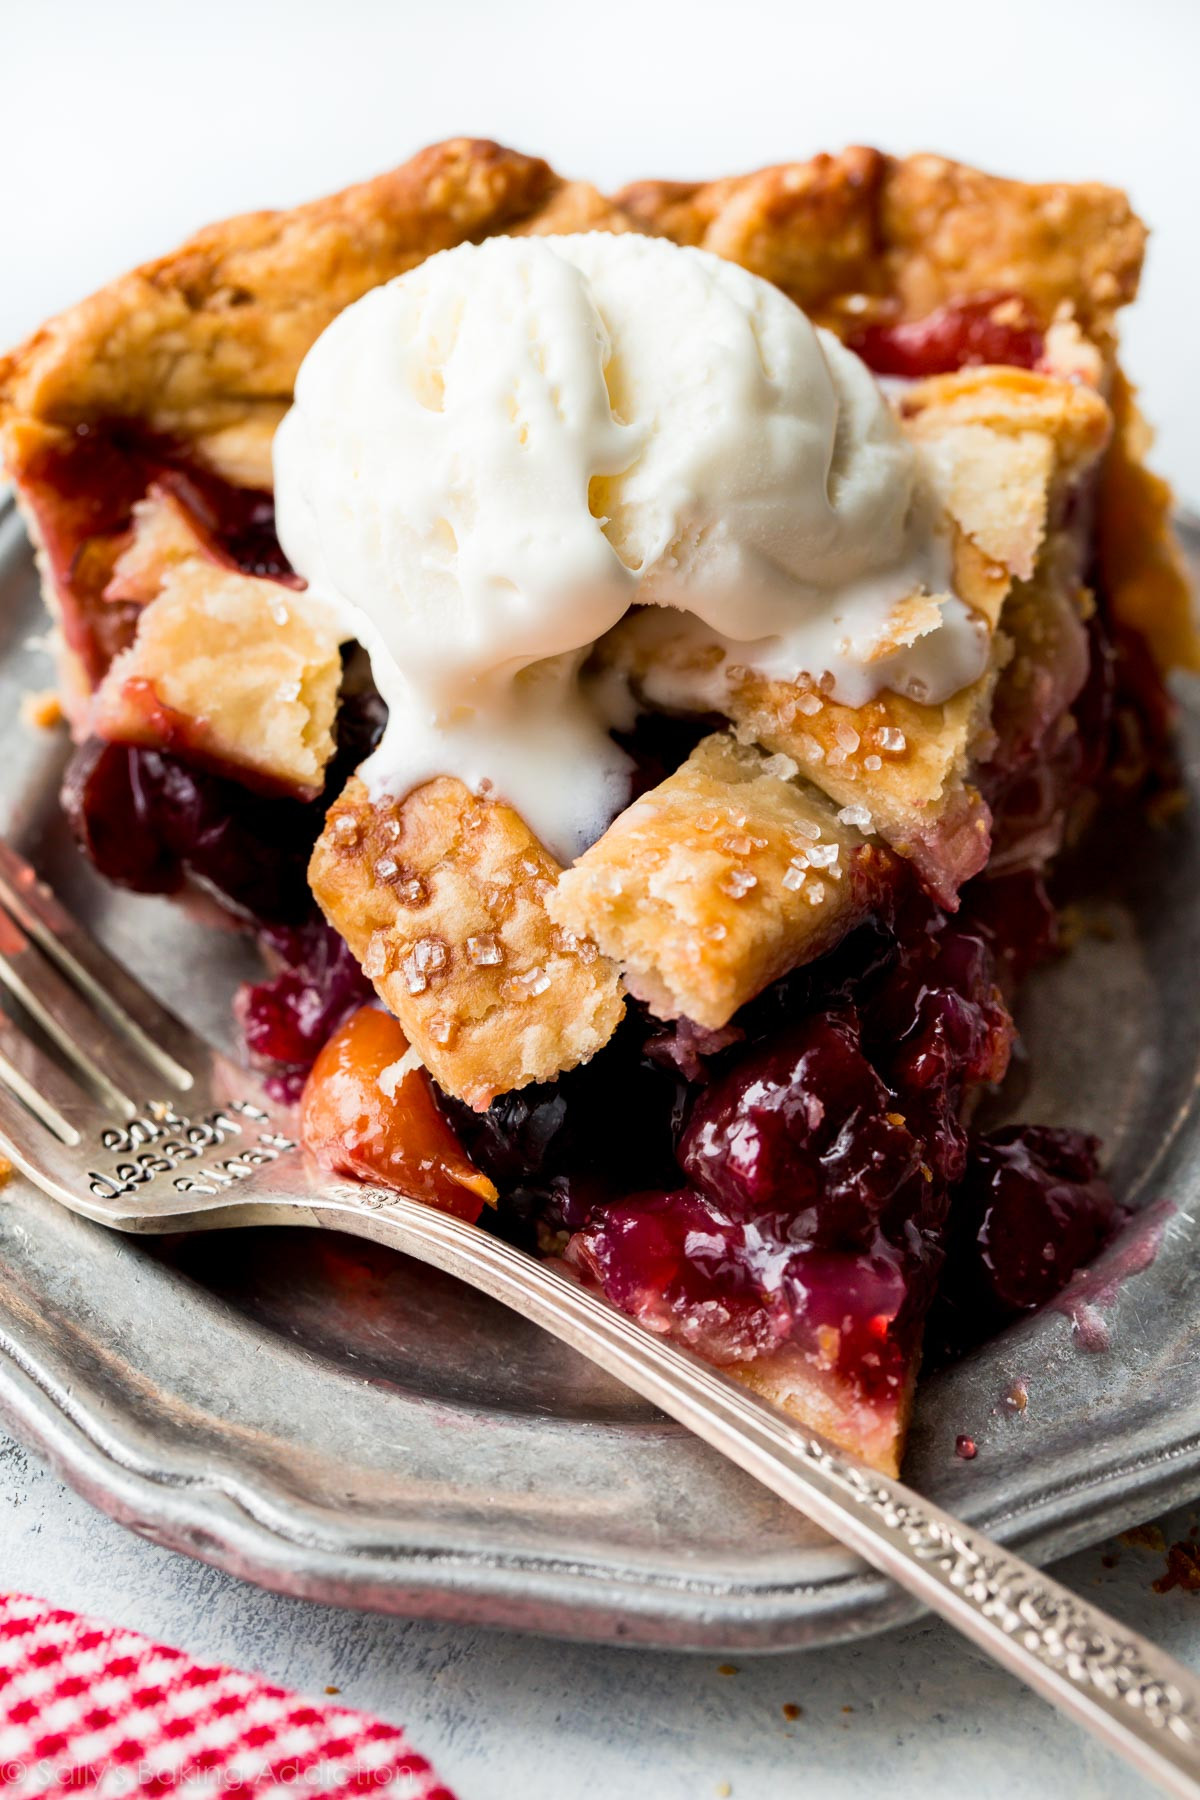 Cherry Pie Recipes  Homemade Cherry Pie Sallys Baking Addiction